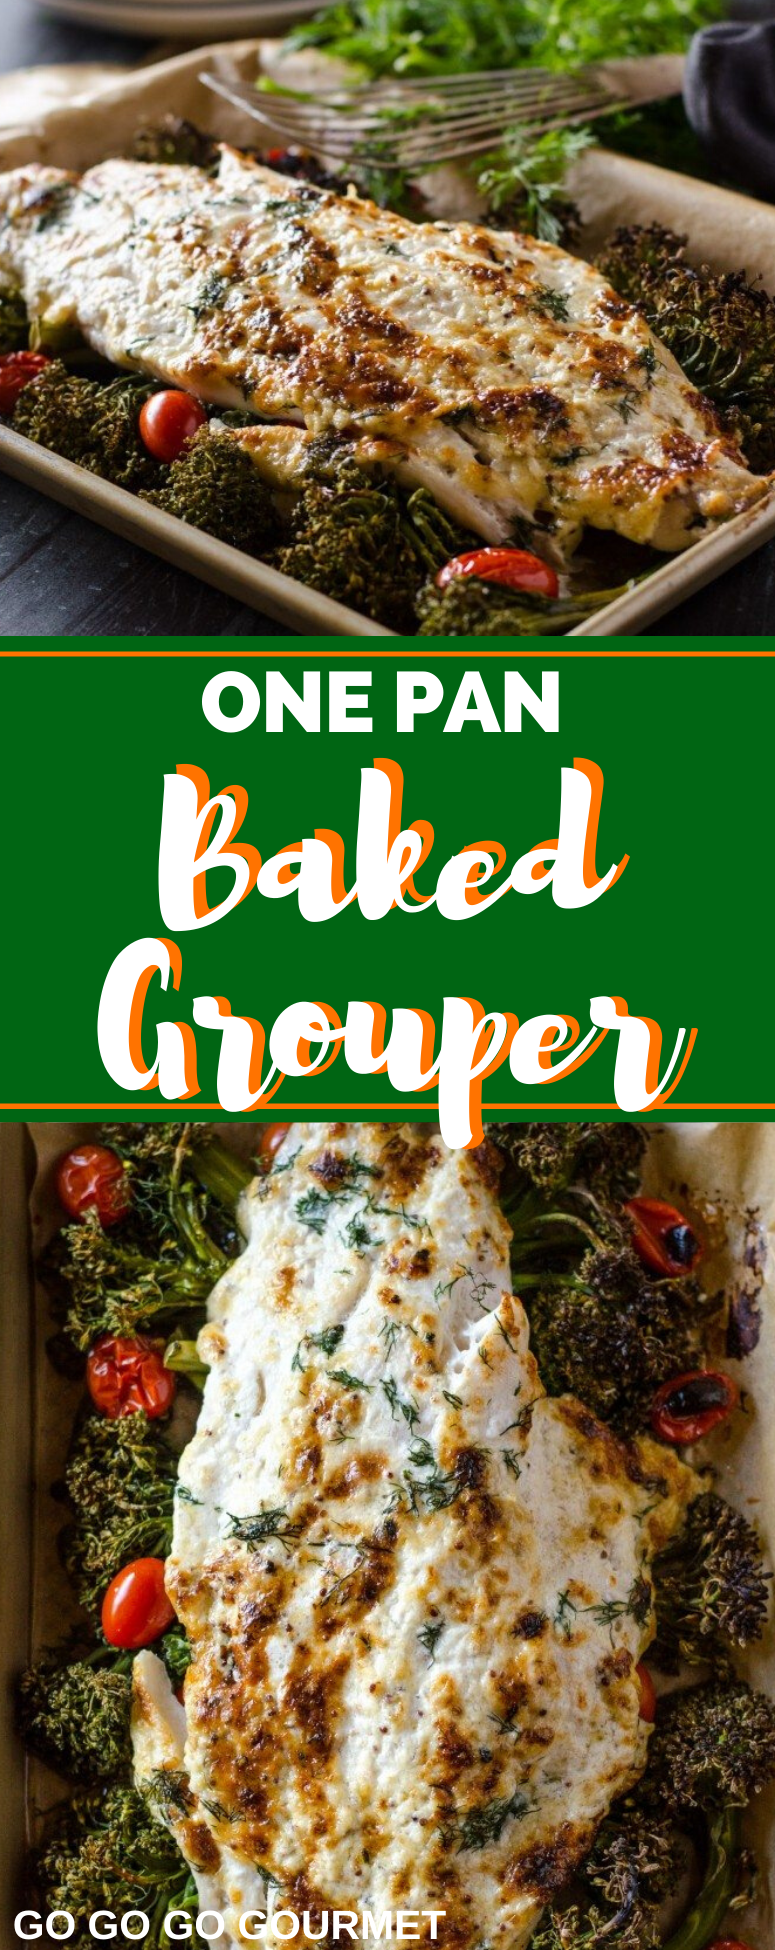 This One Pan Baked Grouper is the perfect fish recipe for Lent! It's baked right in the oven with a delicious sauce to make a flavorful meal that everyone will love! #fishfriday #lentendinner #seafoodrecipes #weeknightdinner #gogogogourmet via @gogogogourmet